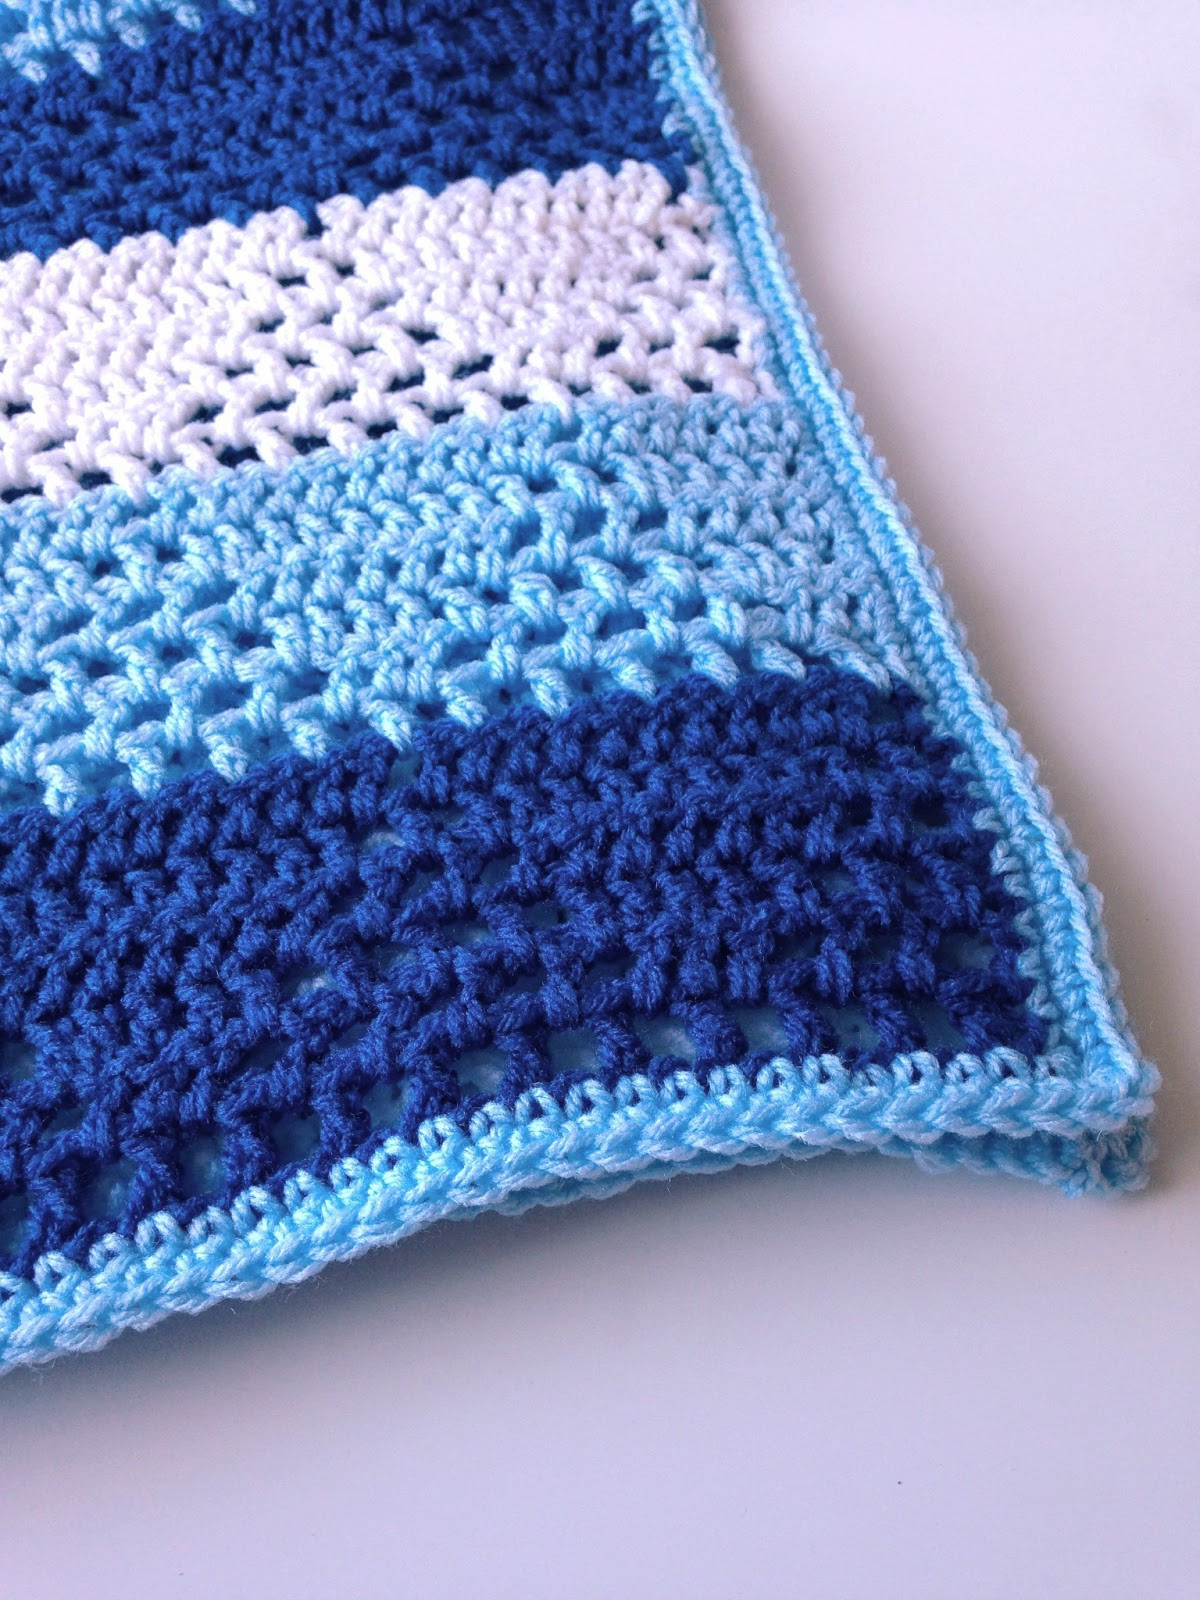 Crochet toddler Blanket Awesome 5 Little Monsters Triangles & Stripes Baby Blanket Of Amazing 41 Ideas Crochet toddler Blanket